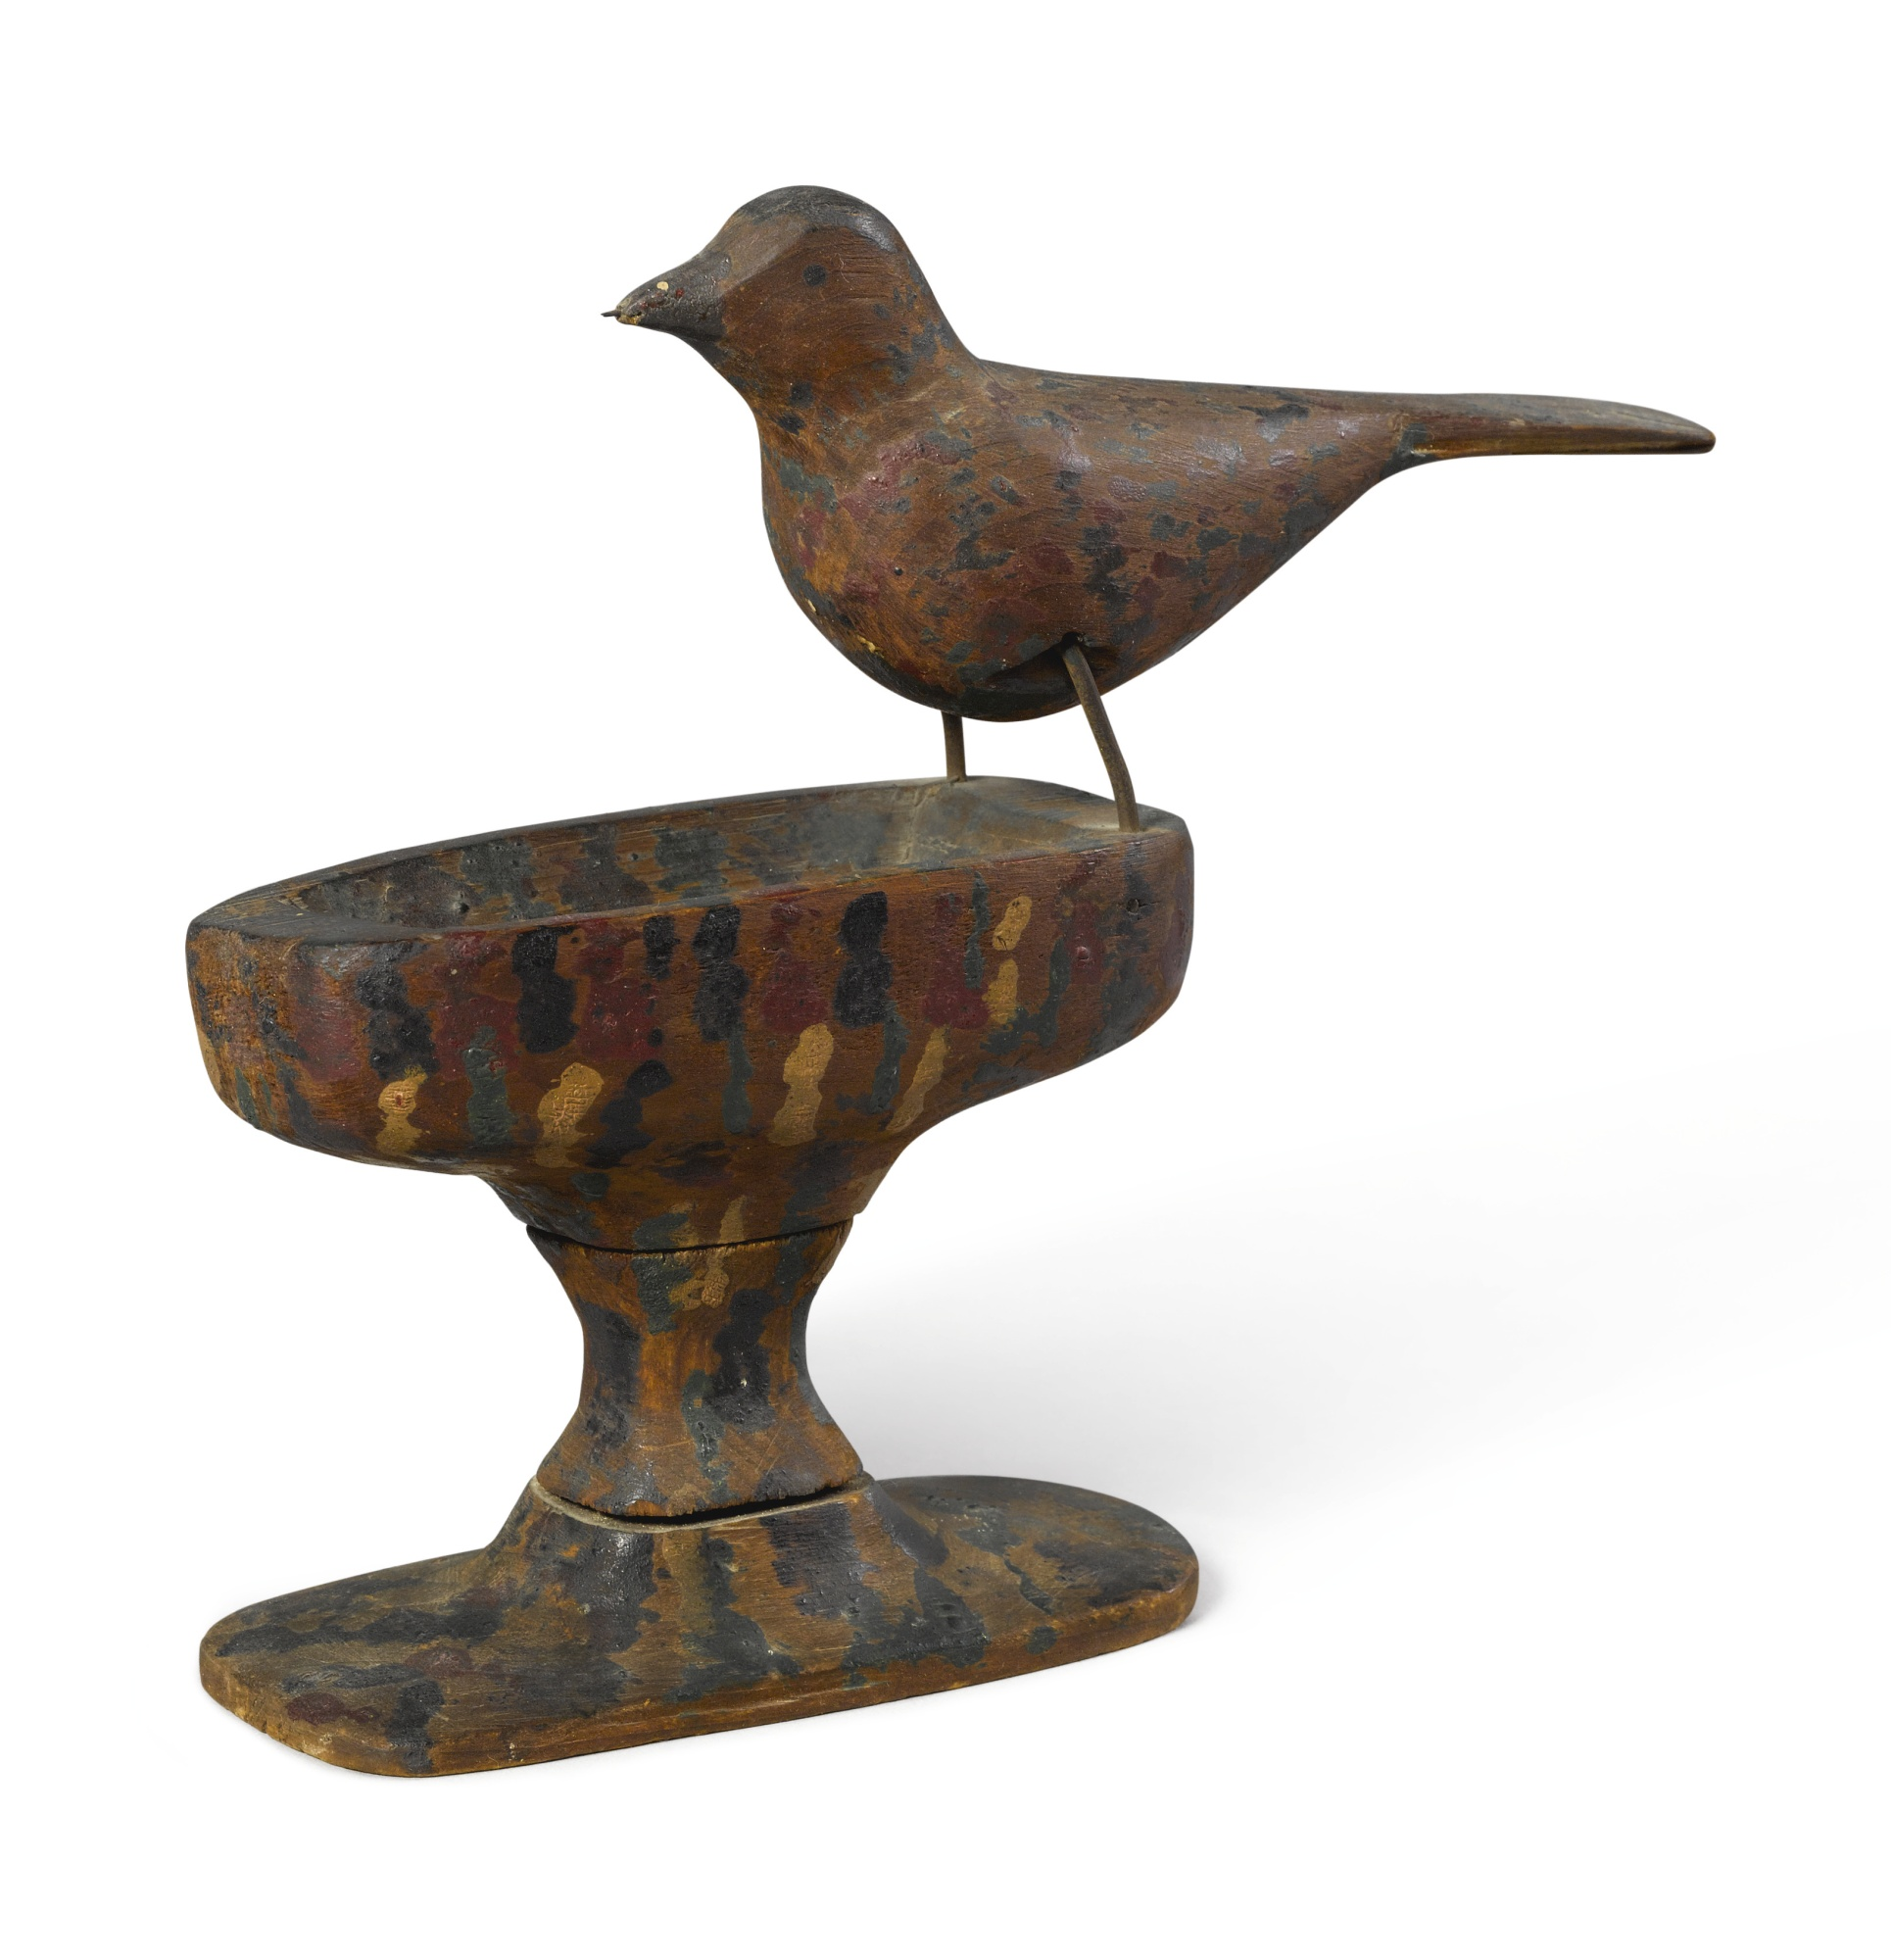 Carved and Painted Wood Bird on Carved Birdbath Base, early 20th century